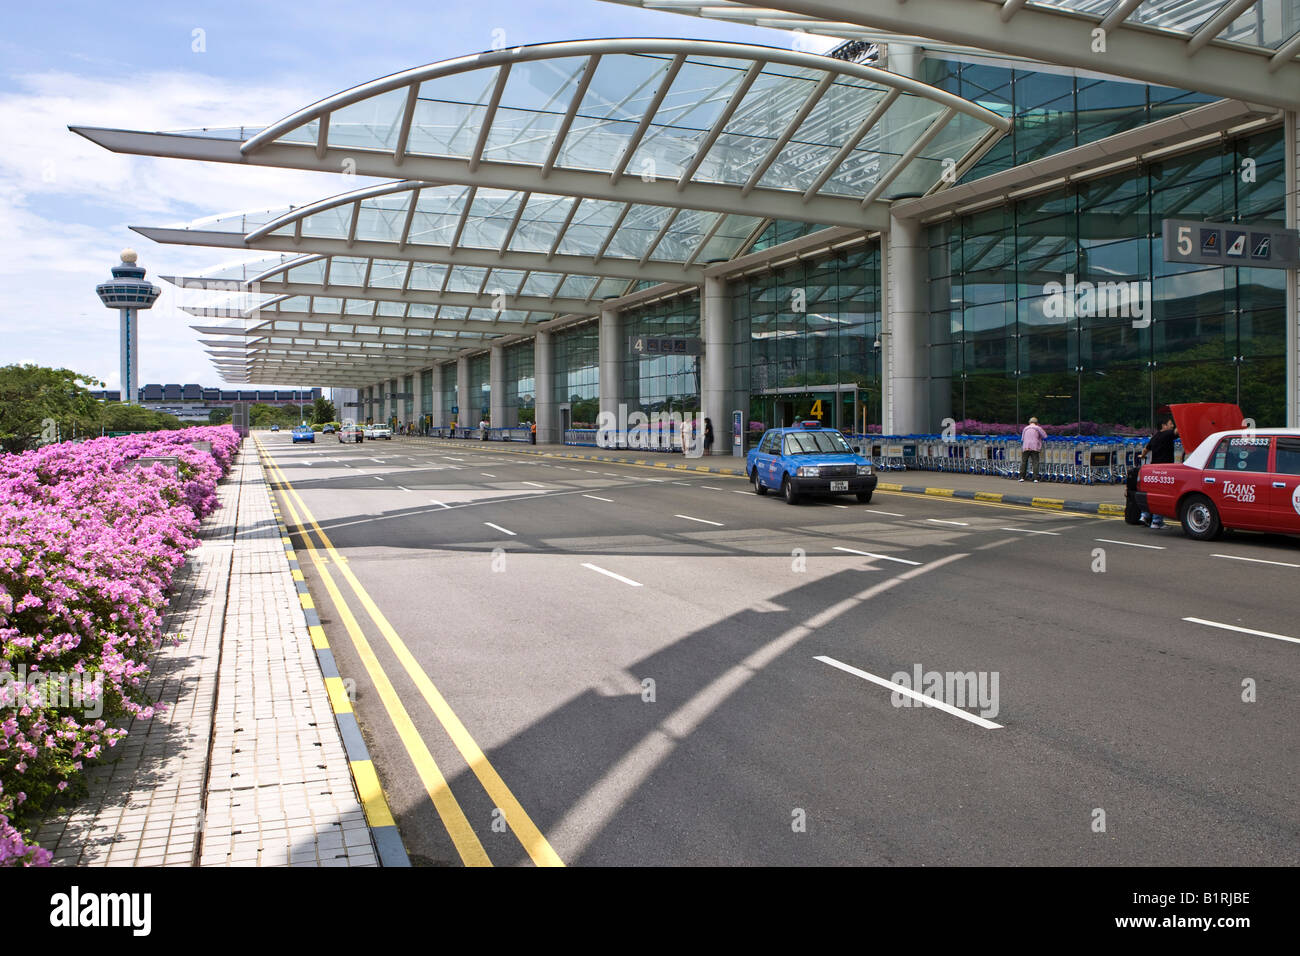 Taxis waiting in front of the Changi Airport, Singapore, Southeast Asia - Stock Image